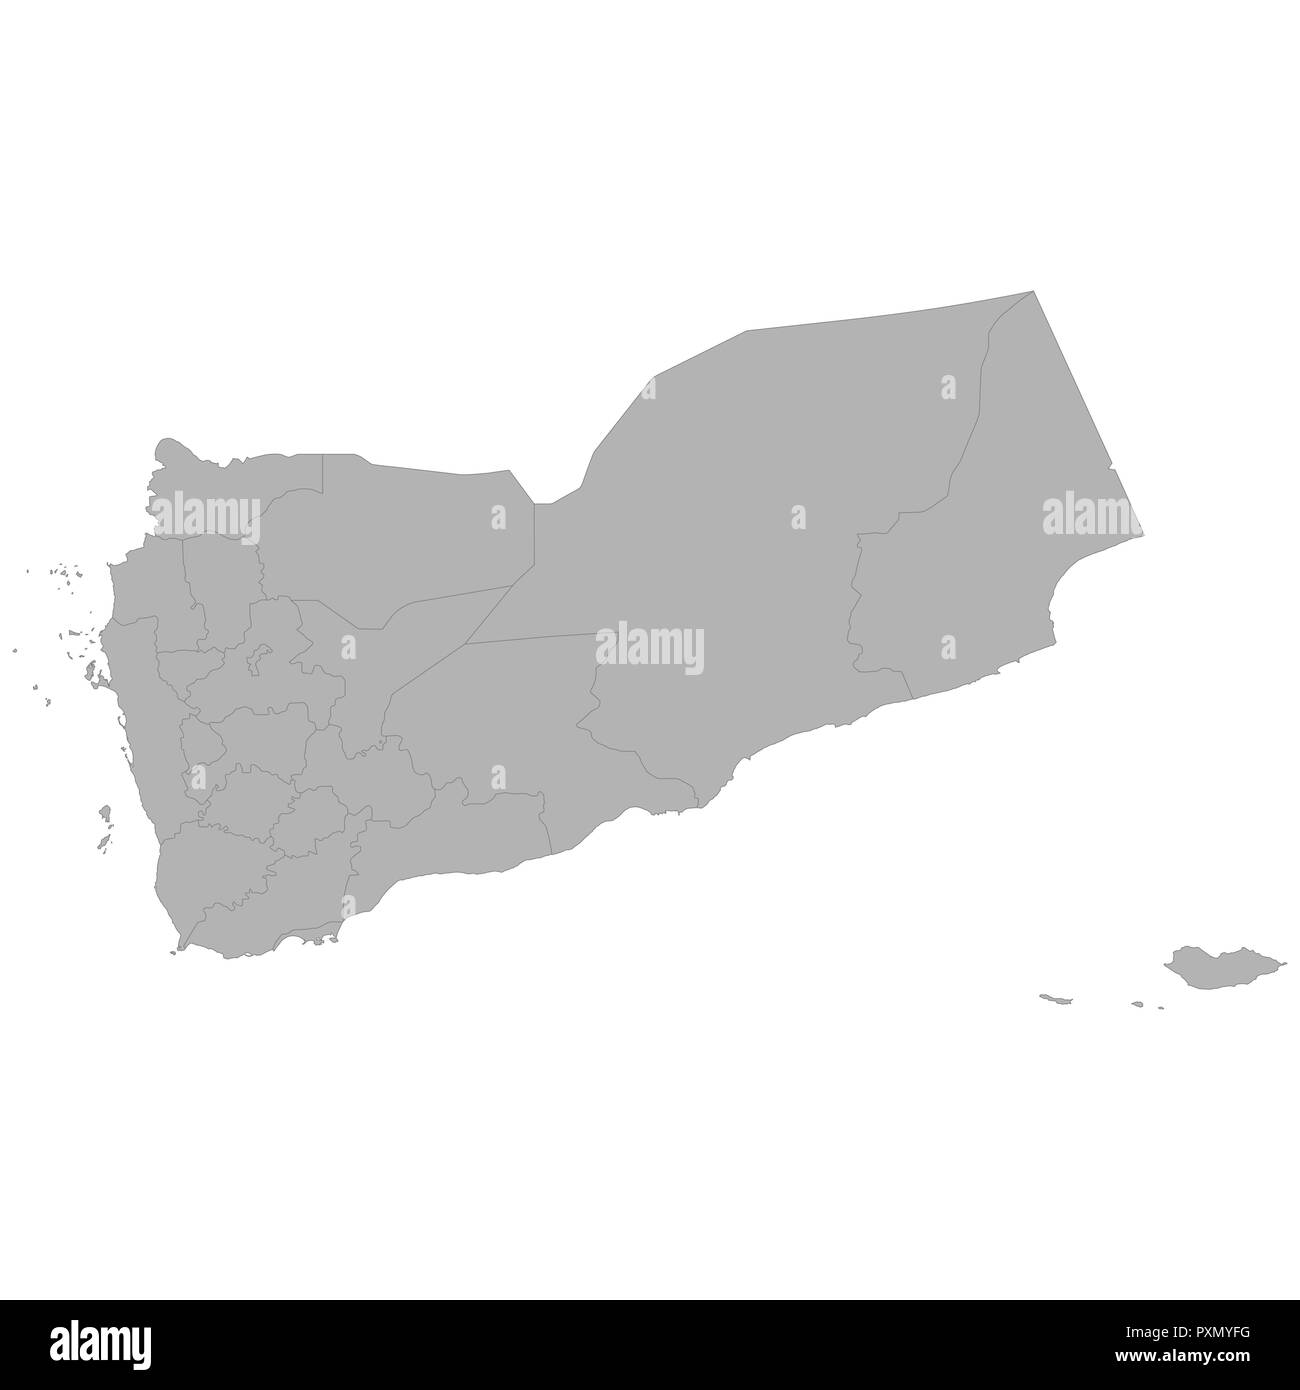 High quality map of Yemen with borders of the regions on white background - Stock Vector